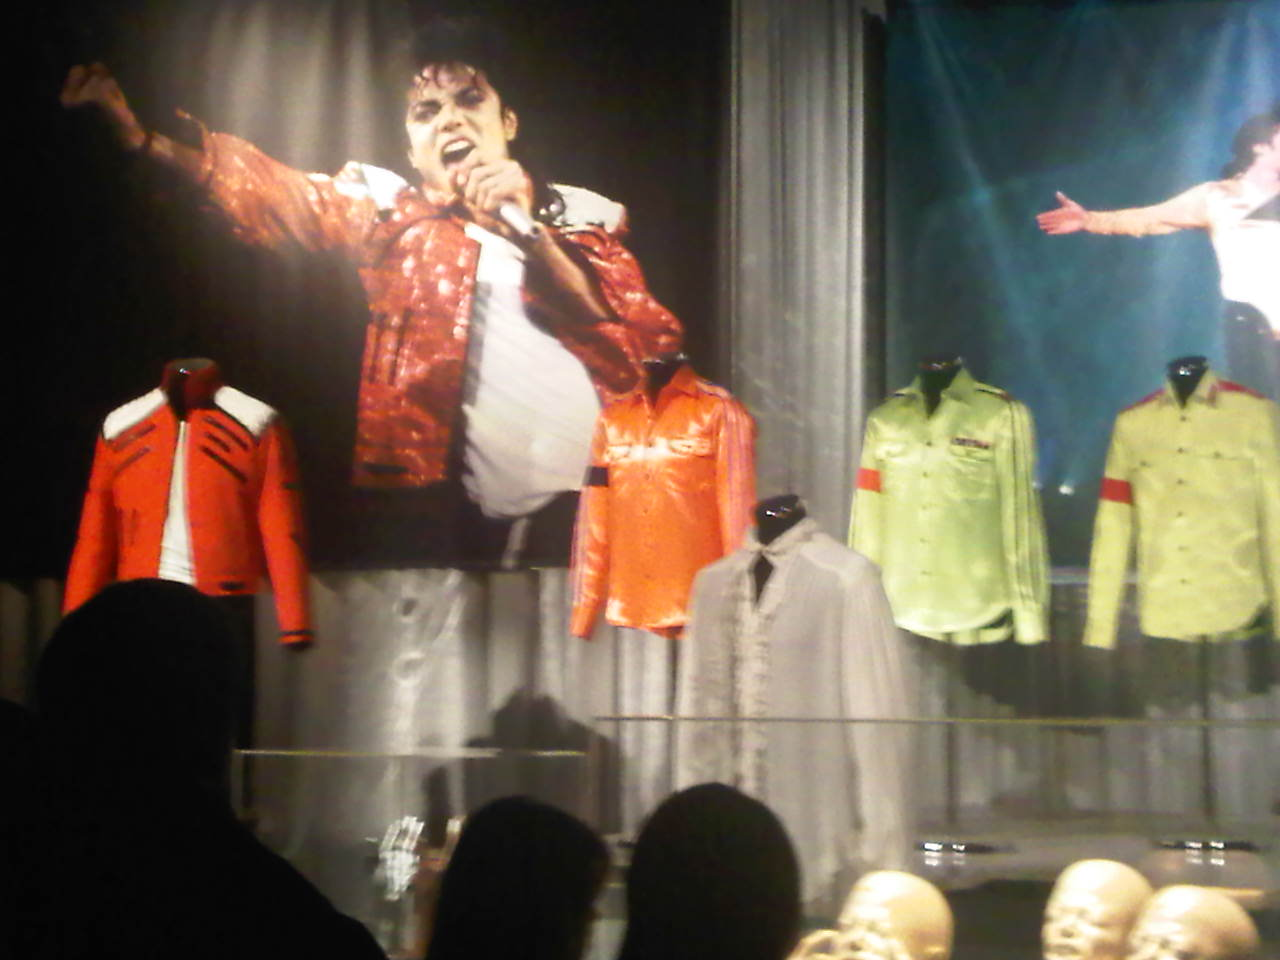 IMG00023 20100227 1711 Review: The Official Michael Jackson Exhibition / London